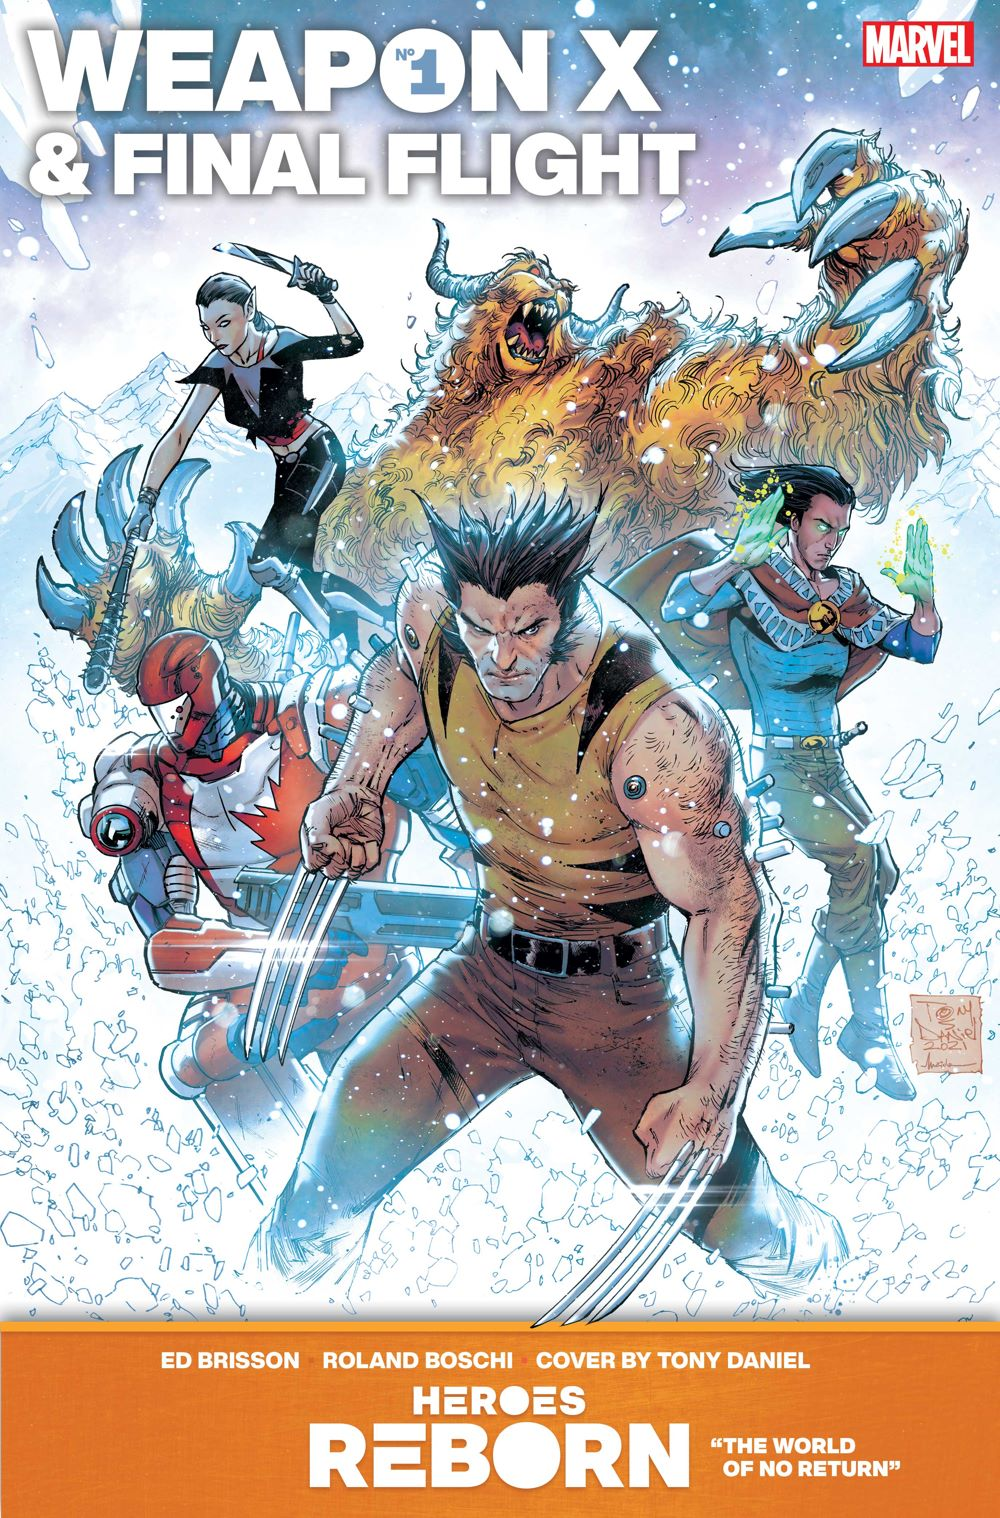 WEAPONX_FINALFLIGHT Even more HEROES REBORN covers are revealed